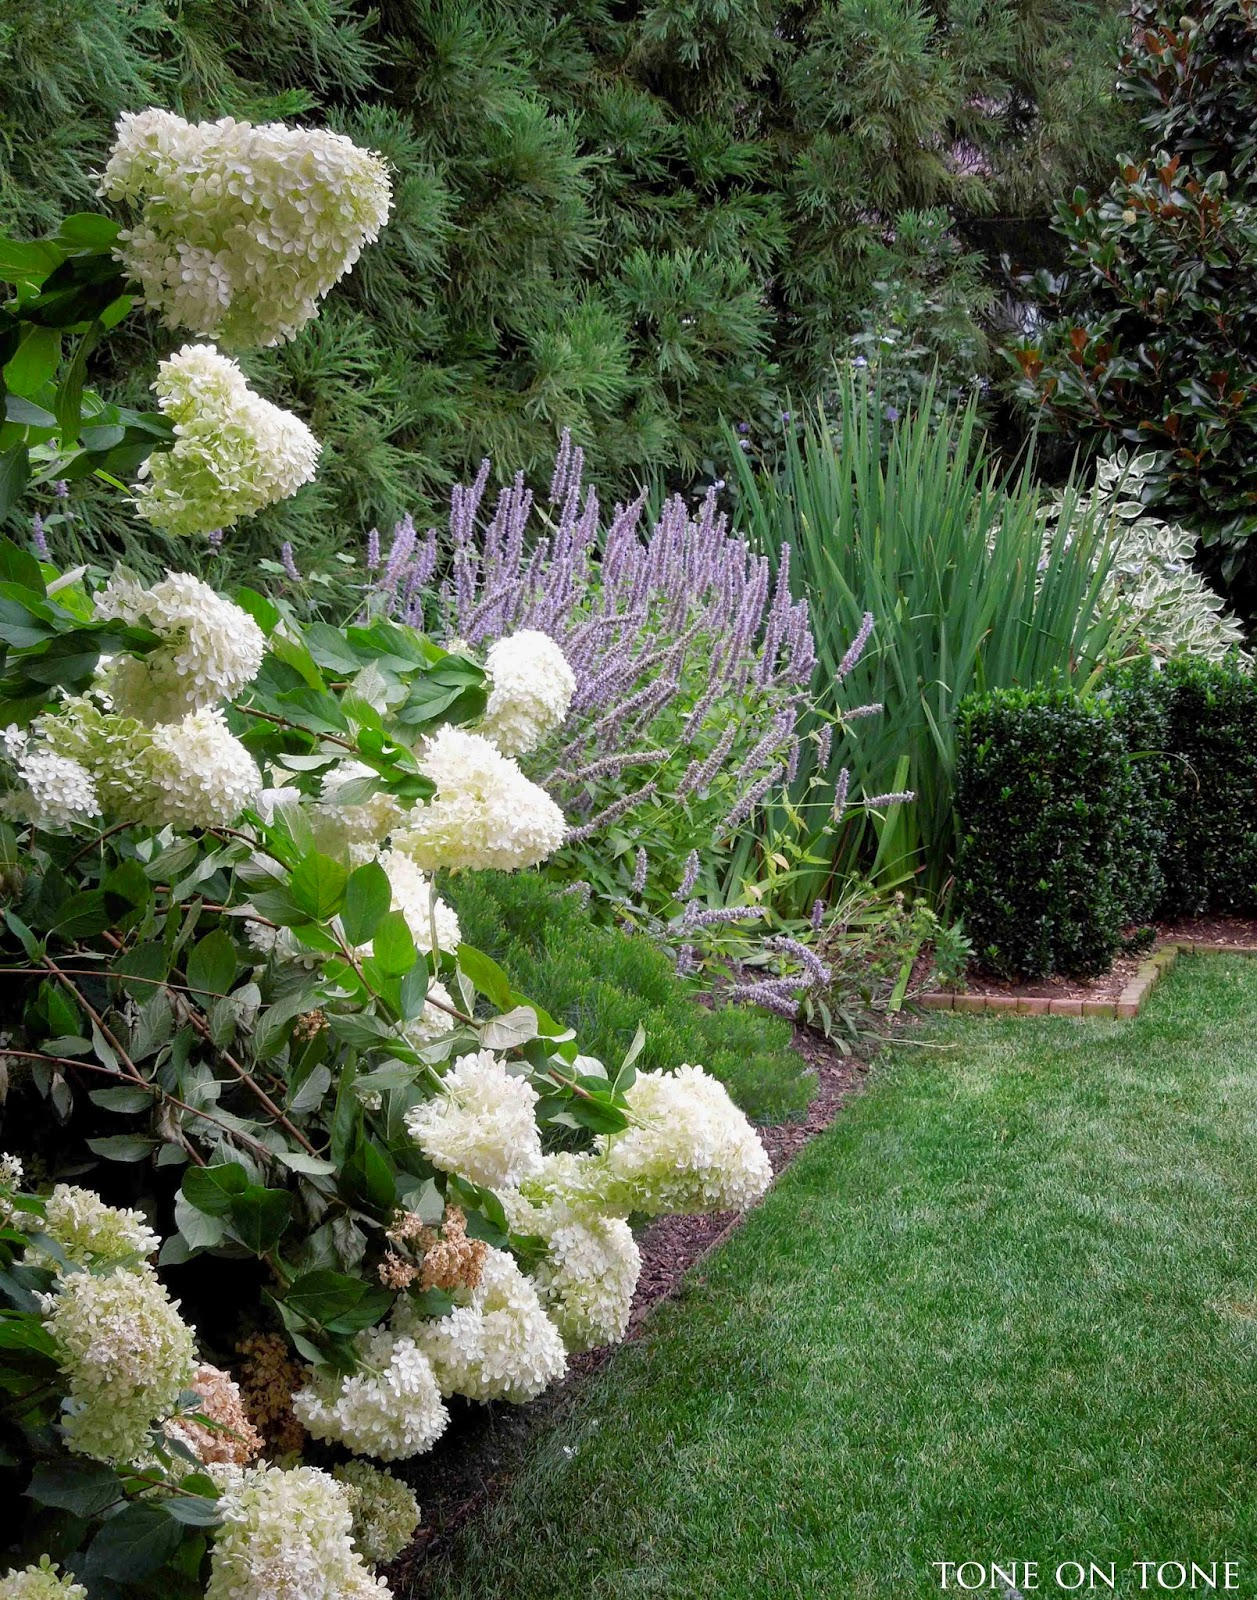 Tone on tone august 2014 for Landscape gardeners